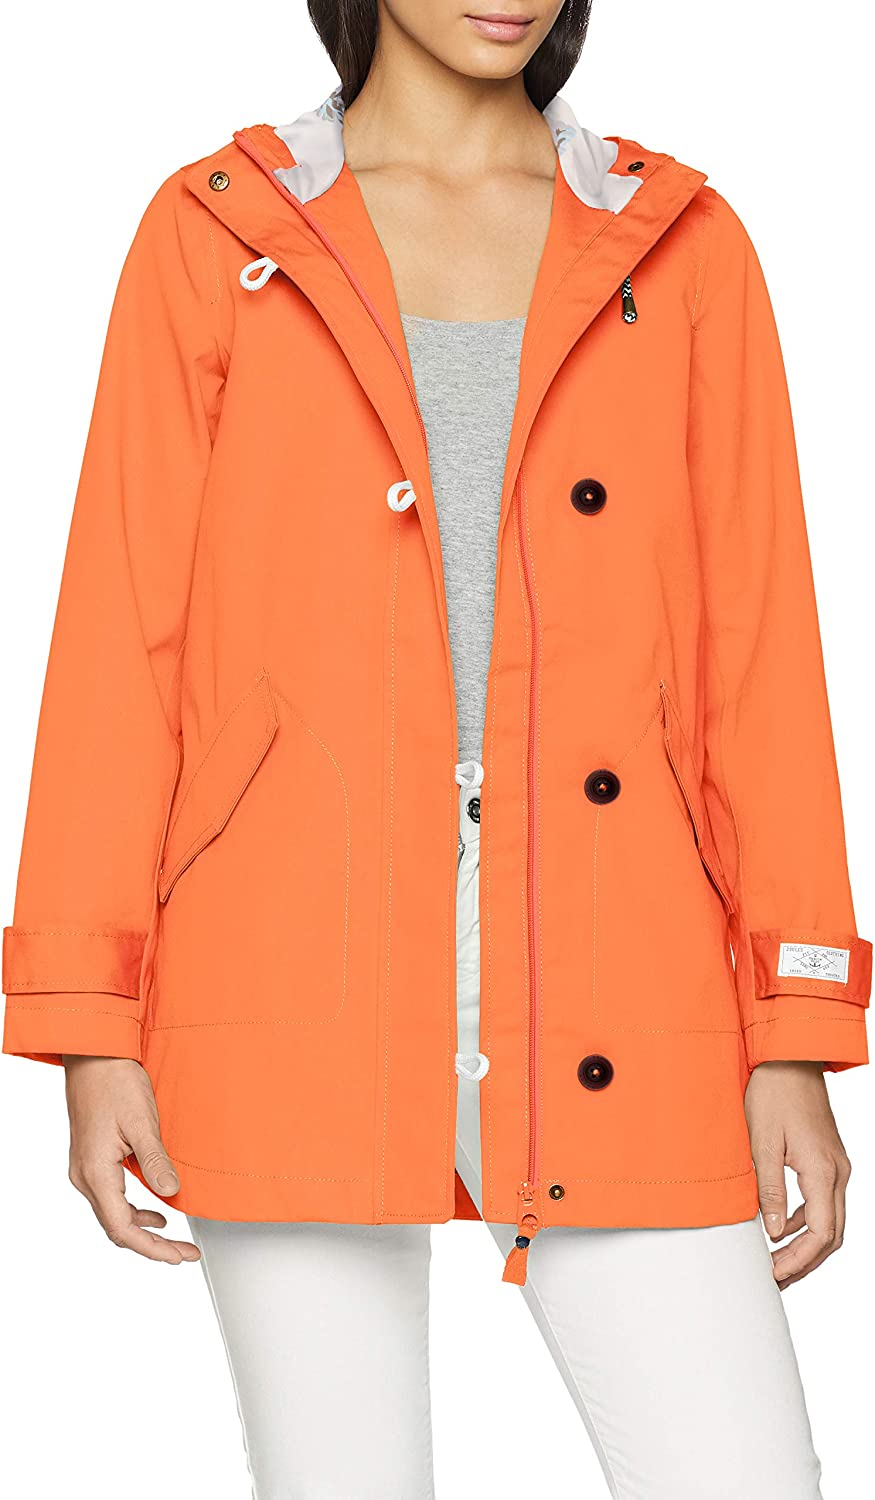 Joules, Coasted Hooded Jacket, Burnt Coral,